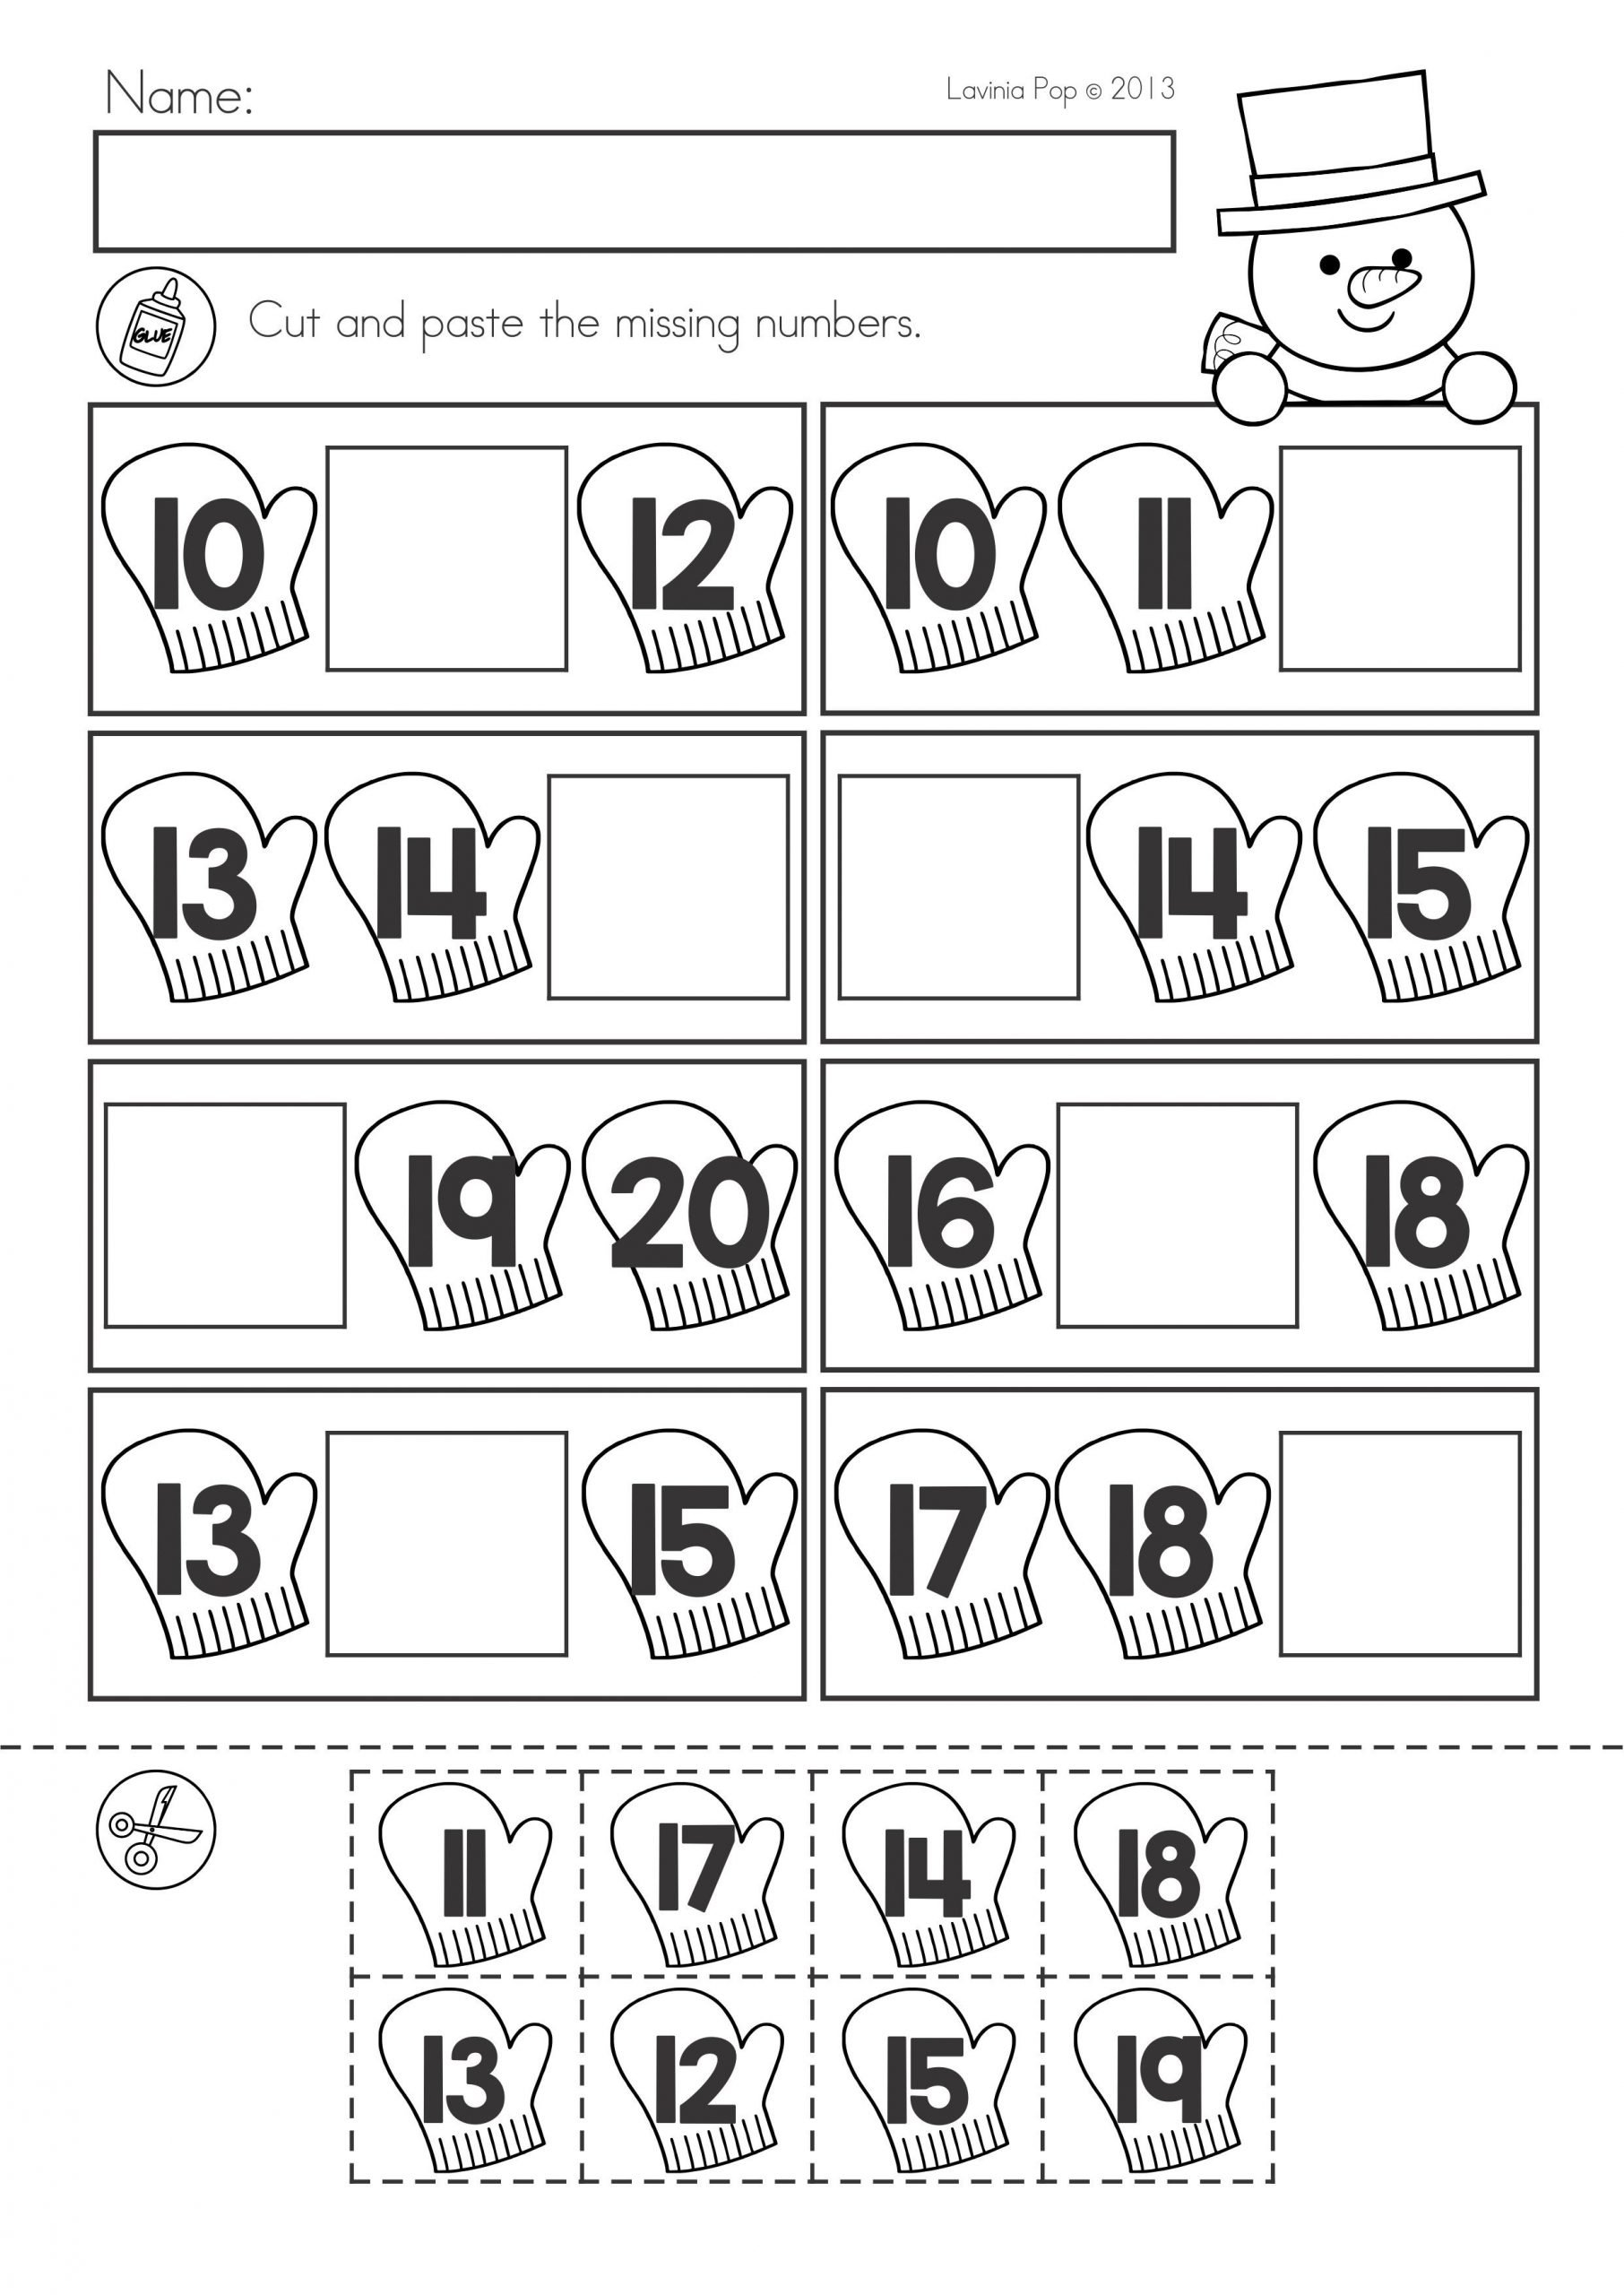 Kindergarten Worksheets Cut and Paste Free Printable Cut and Paste Worksheets for Preschool